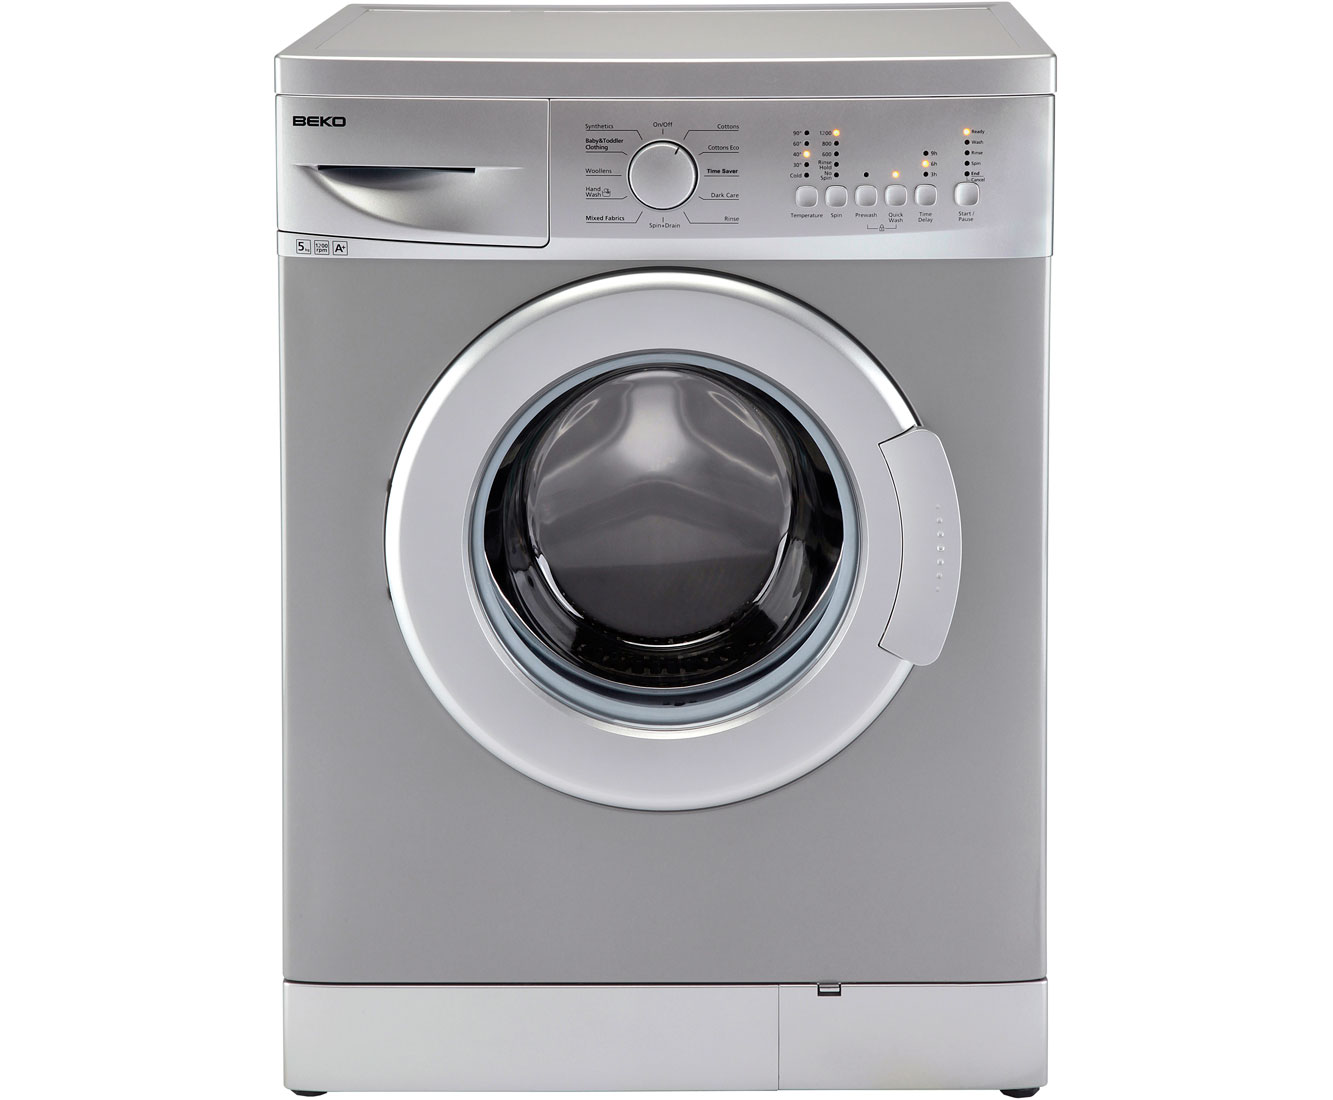 Beko WMB51221S 5Kg Washing Machine with 1200 rpm - Silver